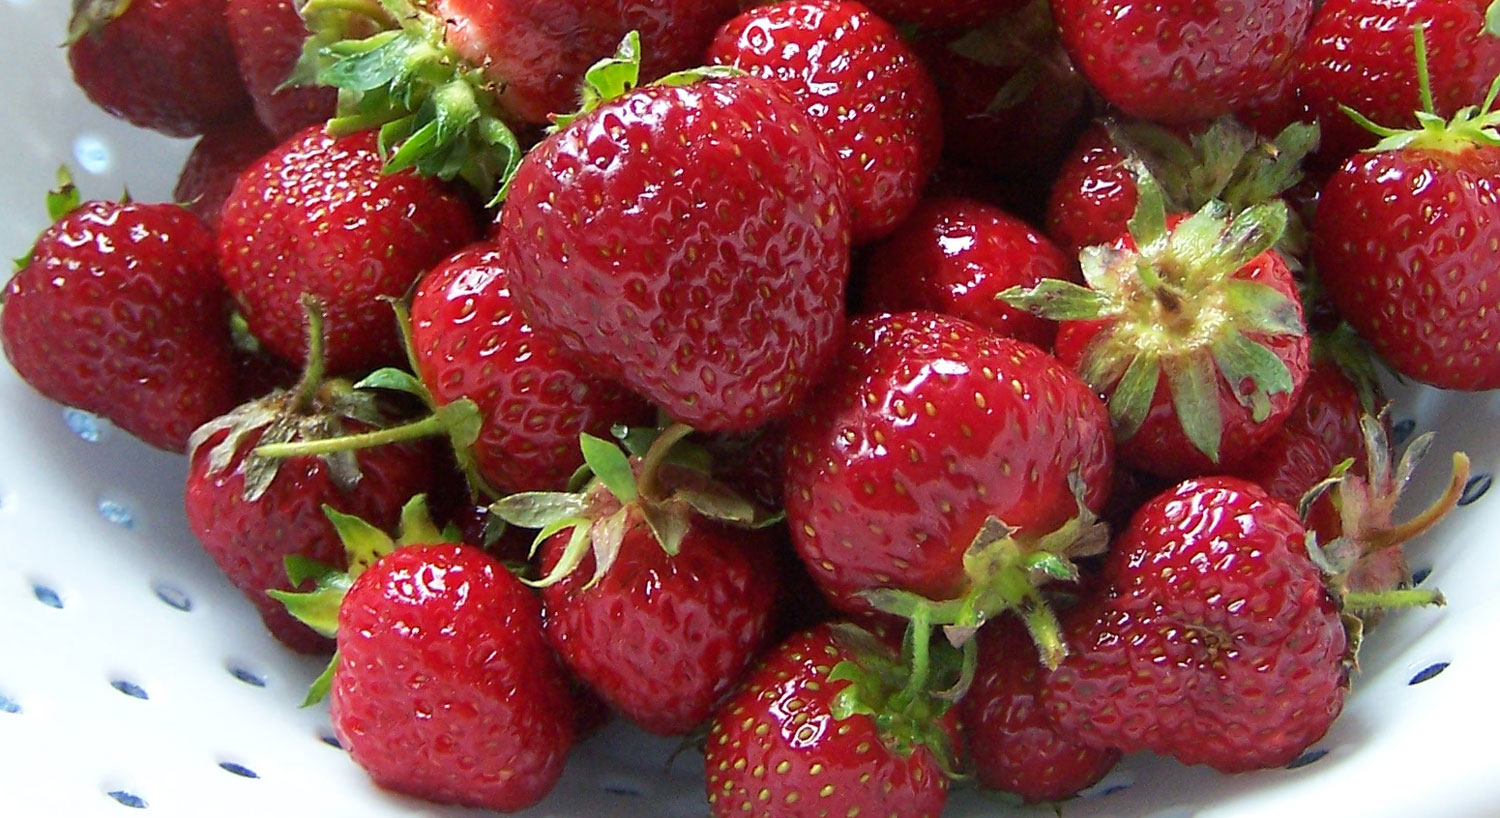 strawberries_7965